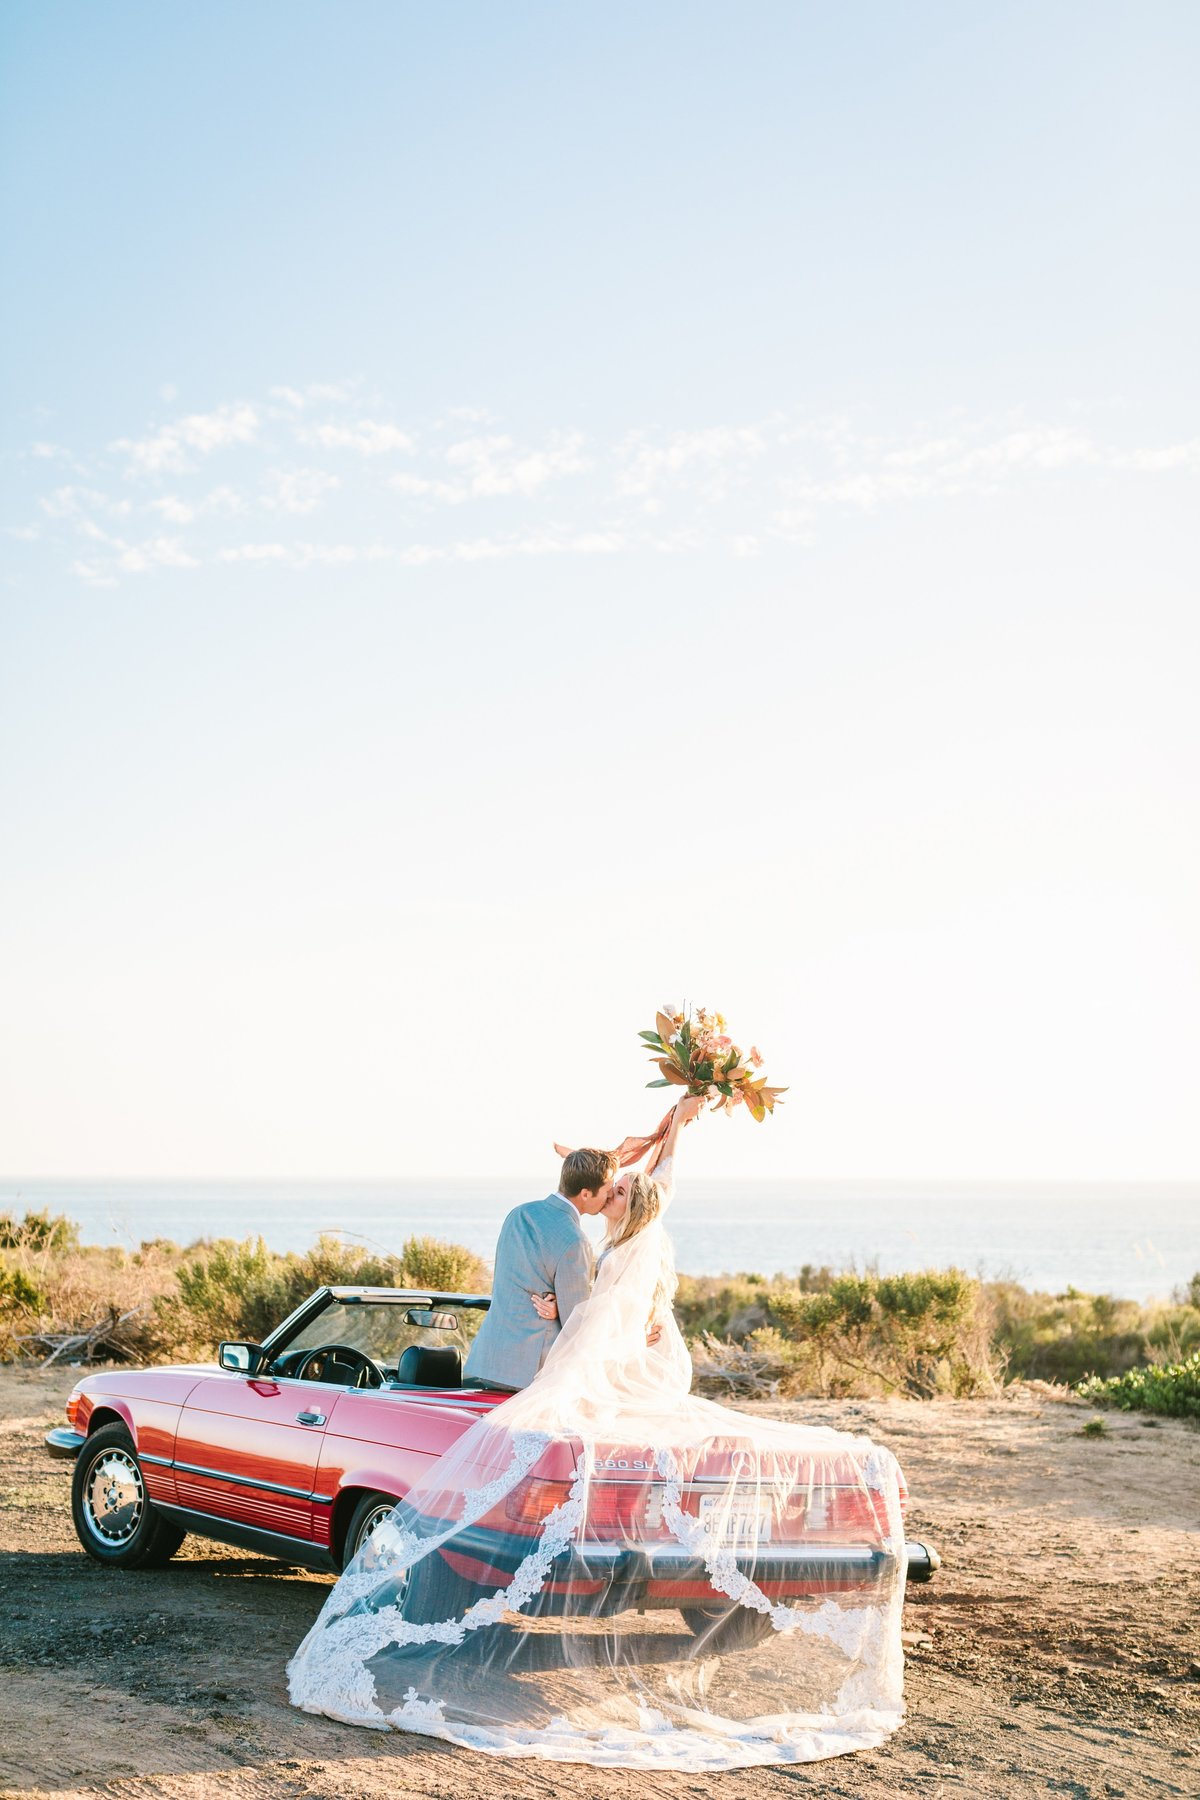 Best California Wedding Photographer-Jodee Debes Photography-230